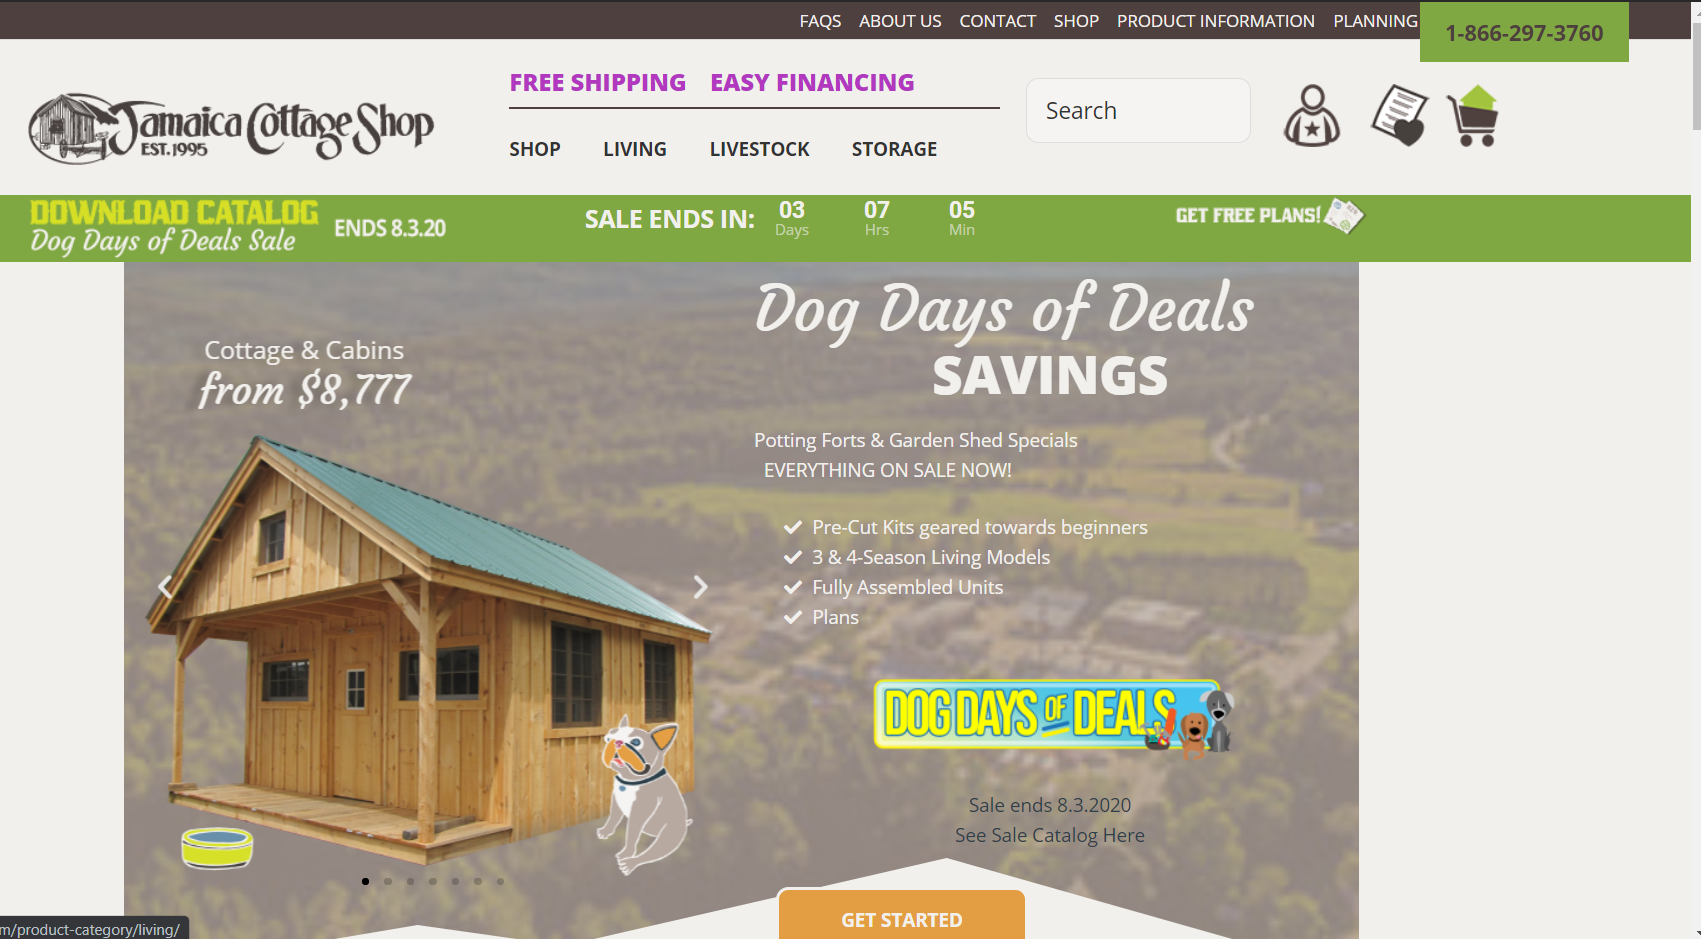 This is a screenshot taken from the JamaicaCottageShop.com website that sell woodworking plans and outbuildings made of quality lumber.